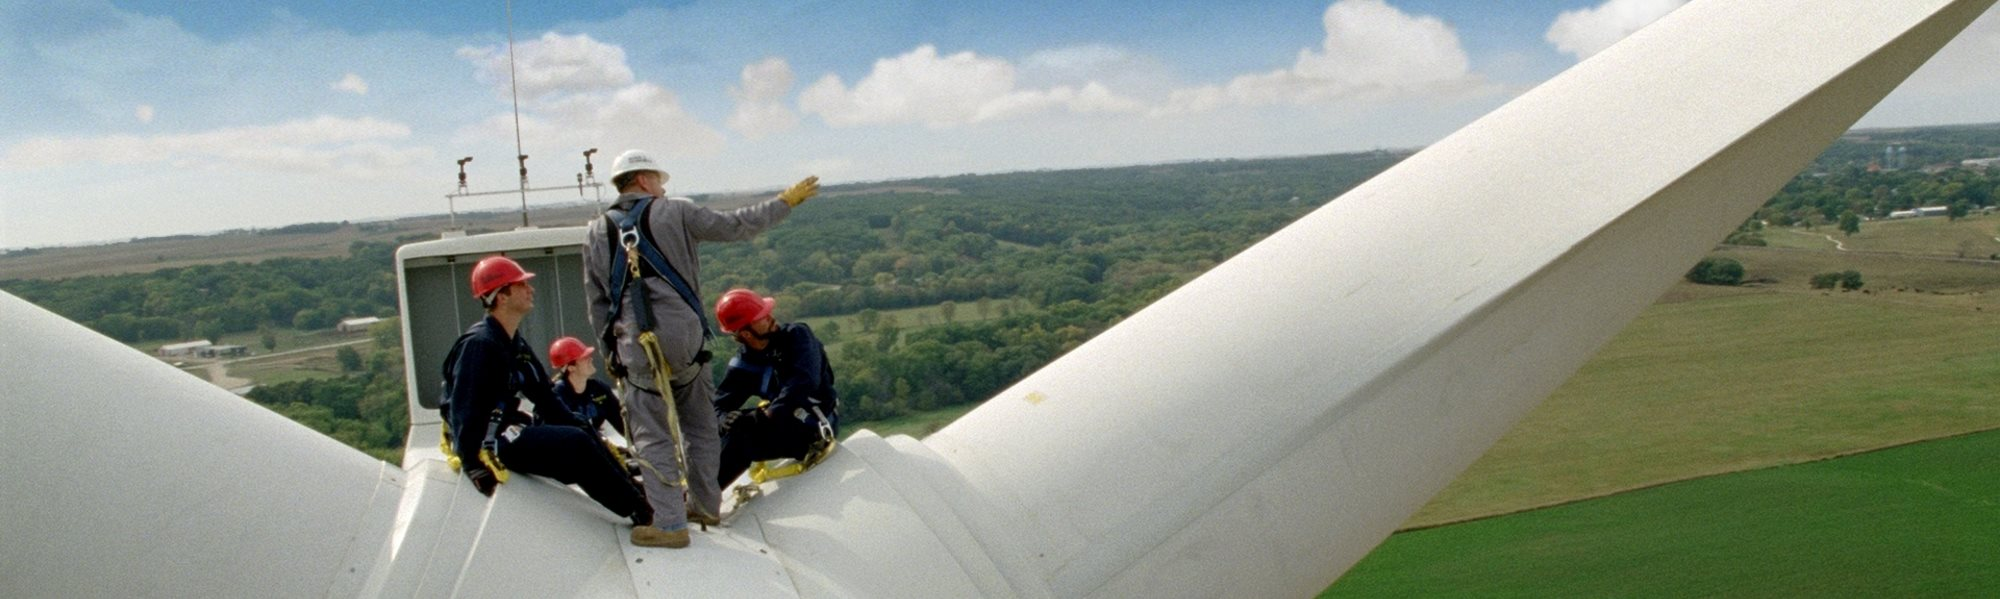 Instructor and students on top of wind turbine